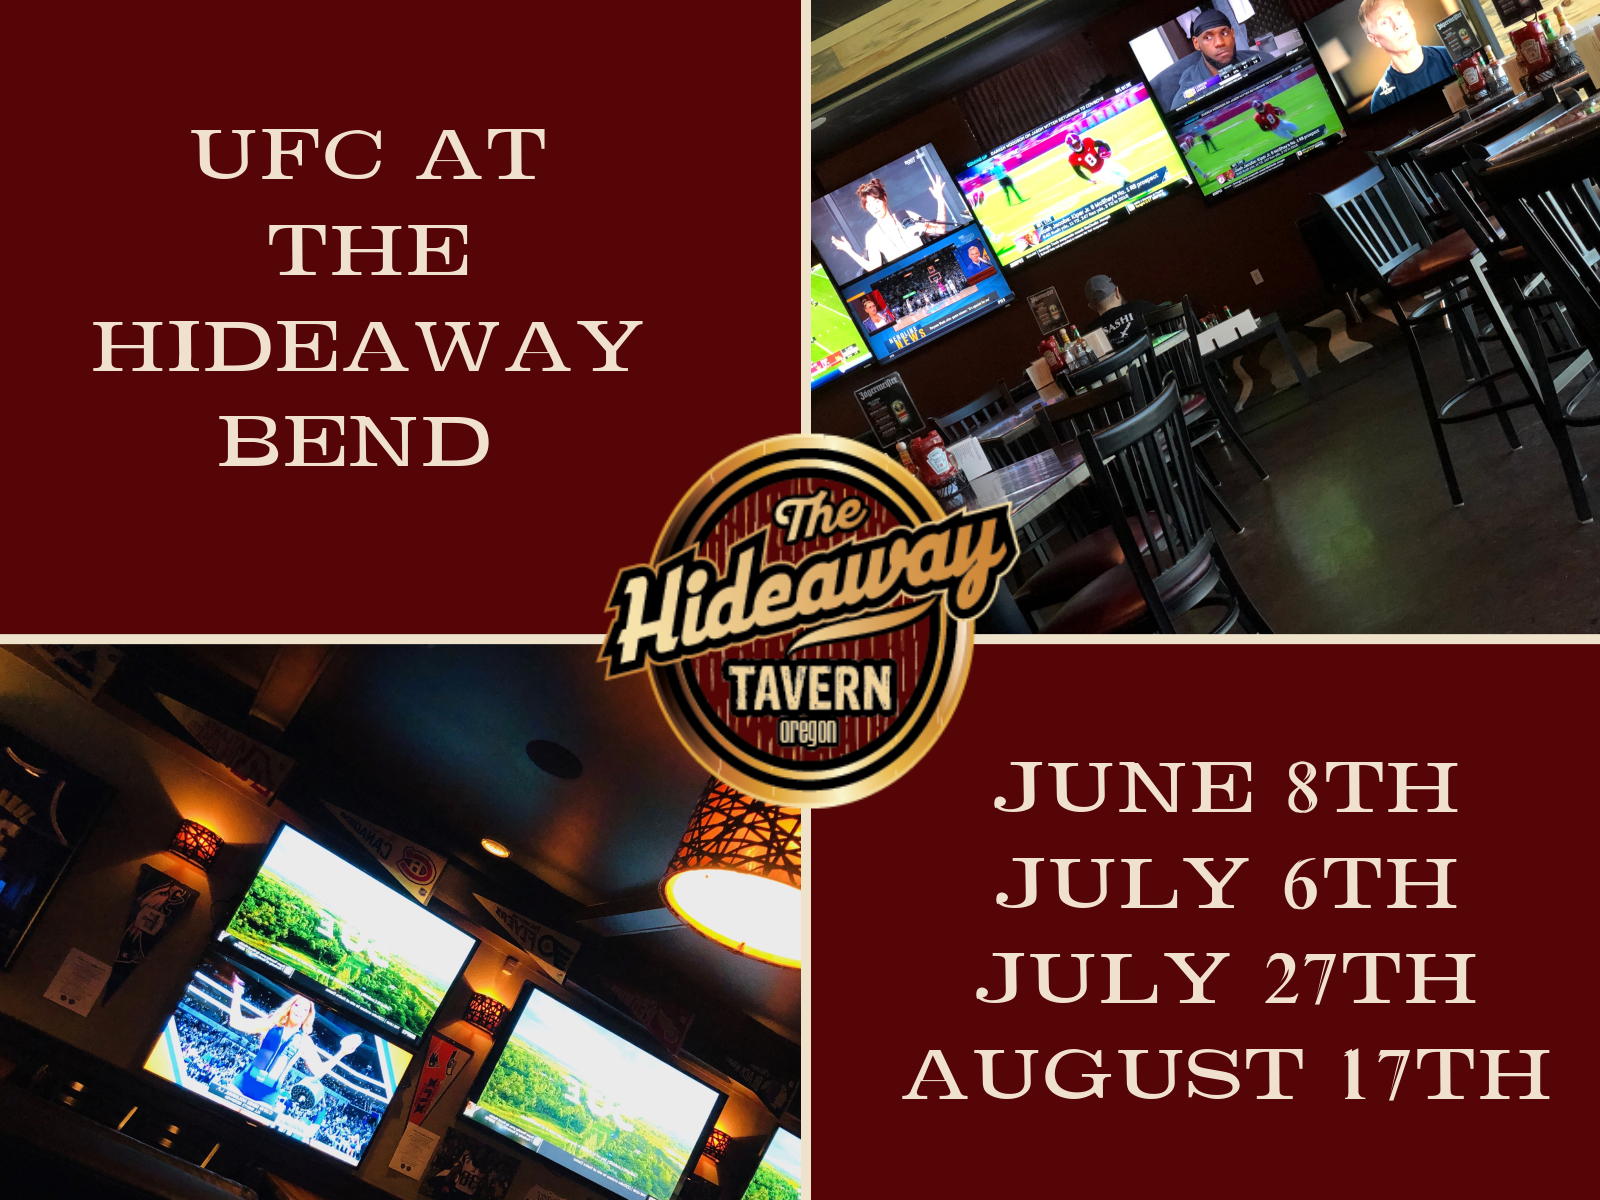 UFC Summer Schedule at The Hideaway Bend | The Hideaway Tavern